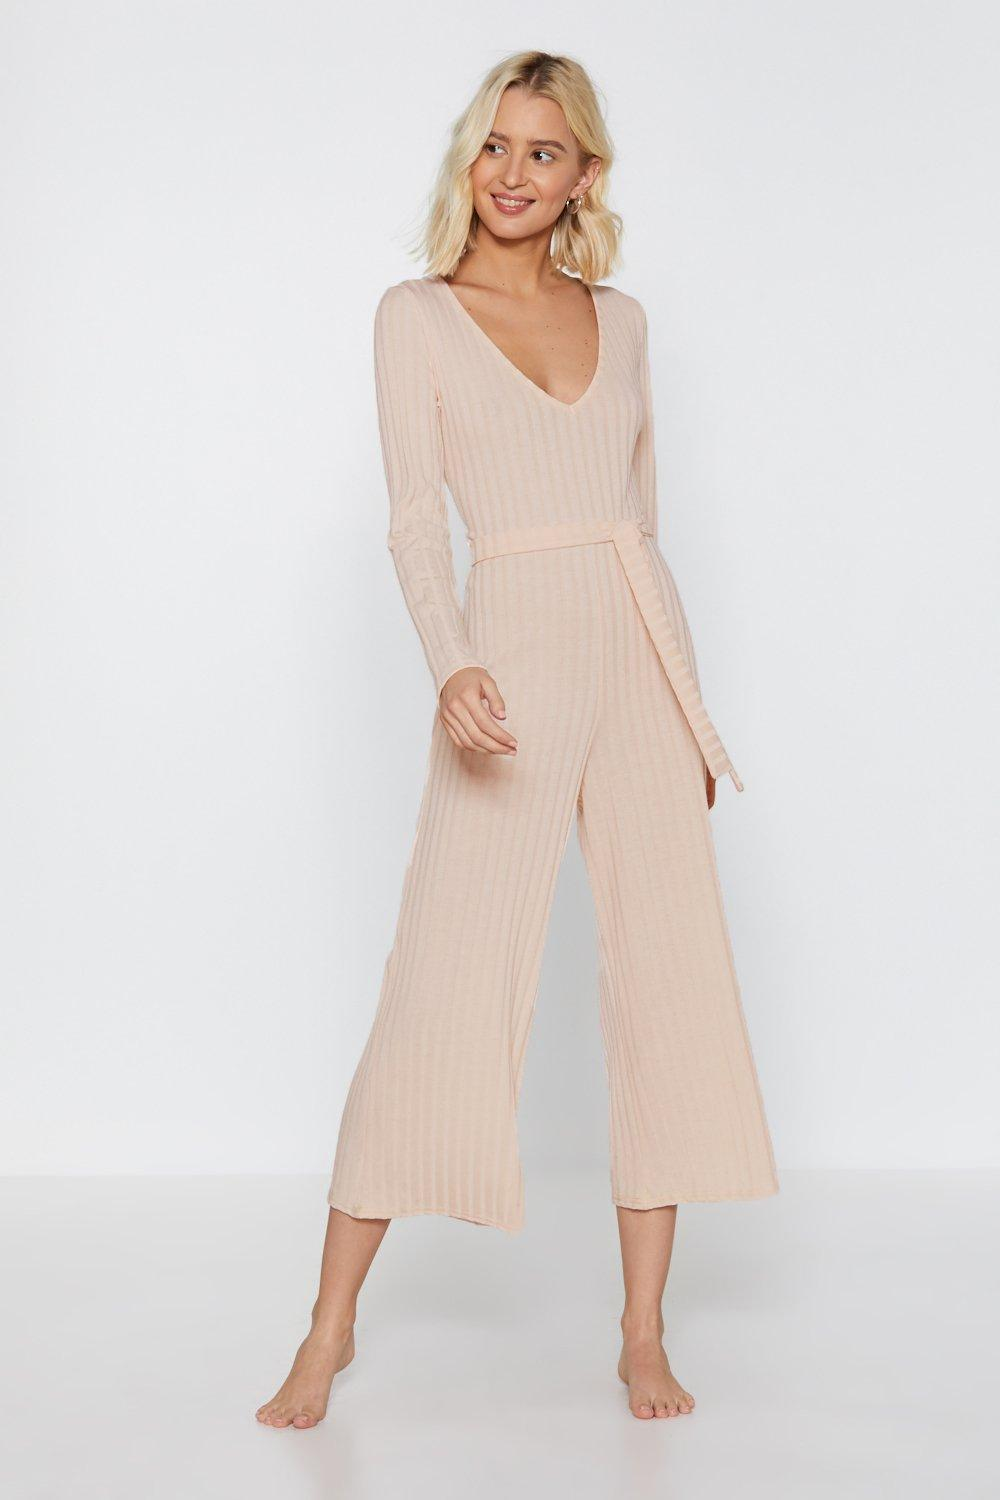 eb5de1a82490 Just Busy RN Ribbed Lounge Jumpsuit